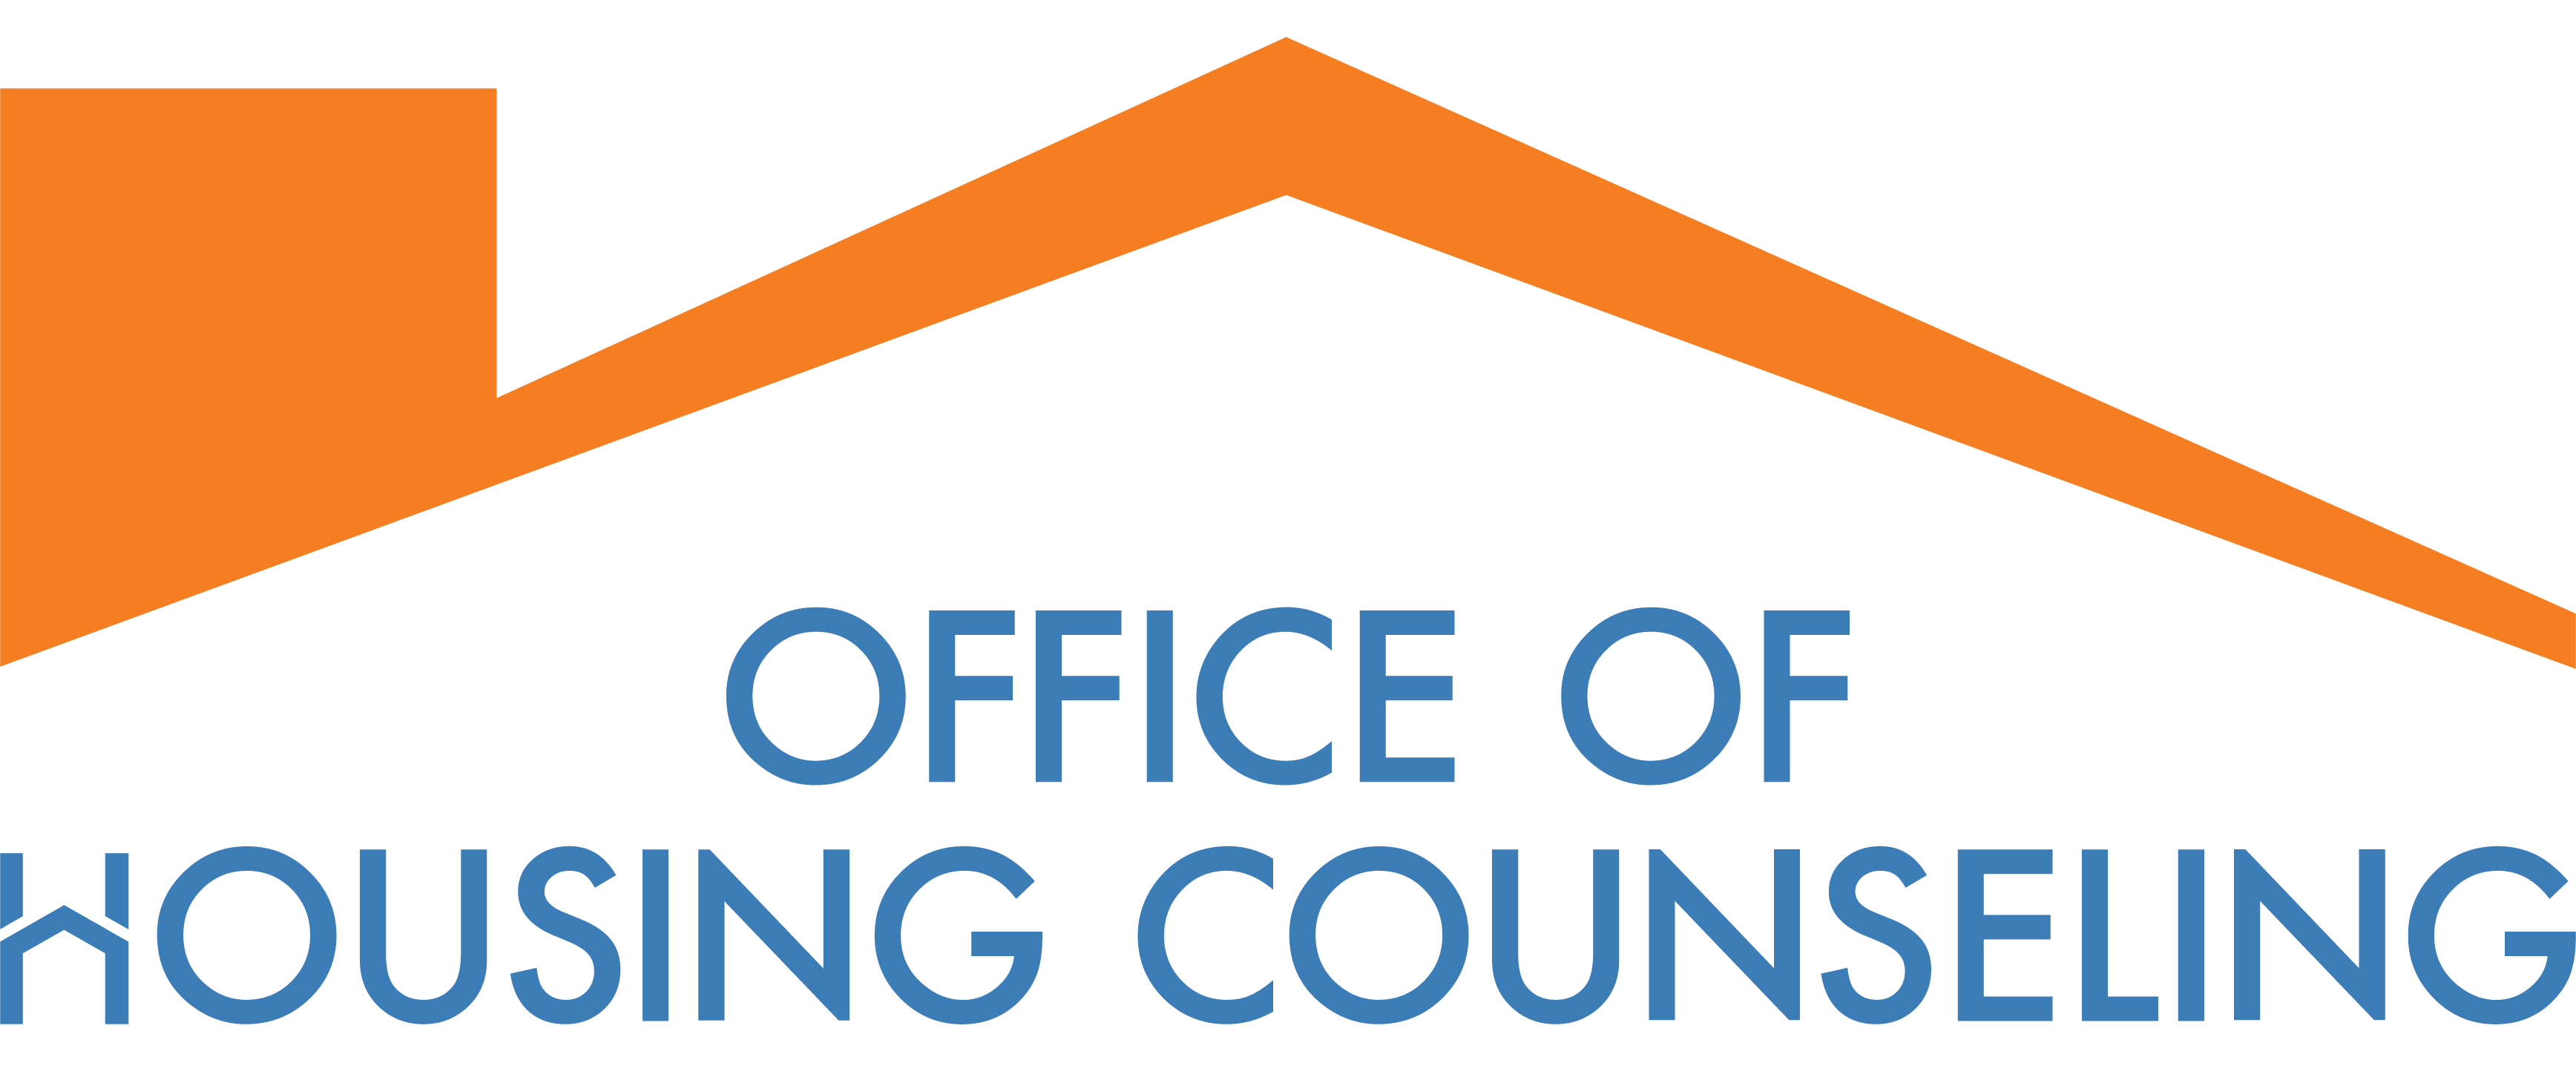 Office of Housing Counseling Logo